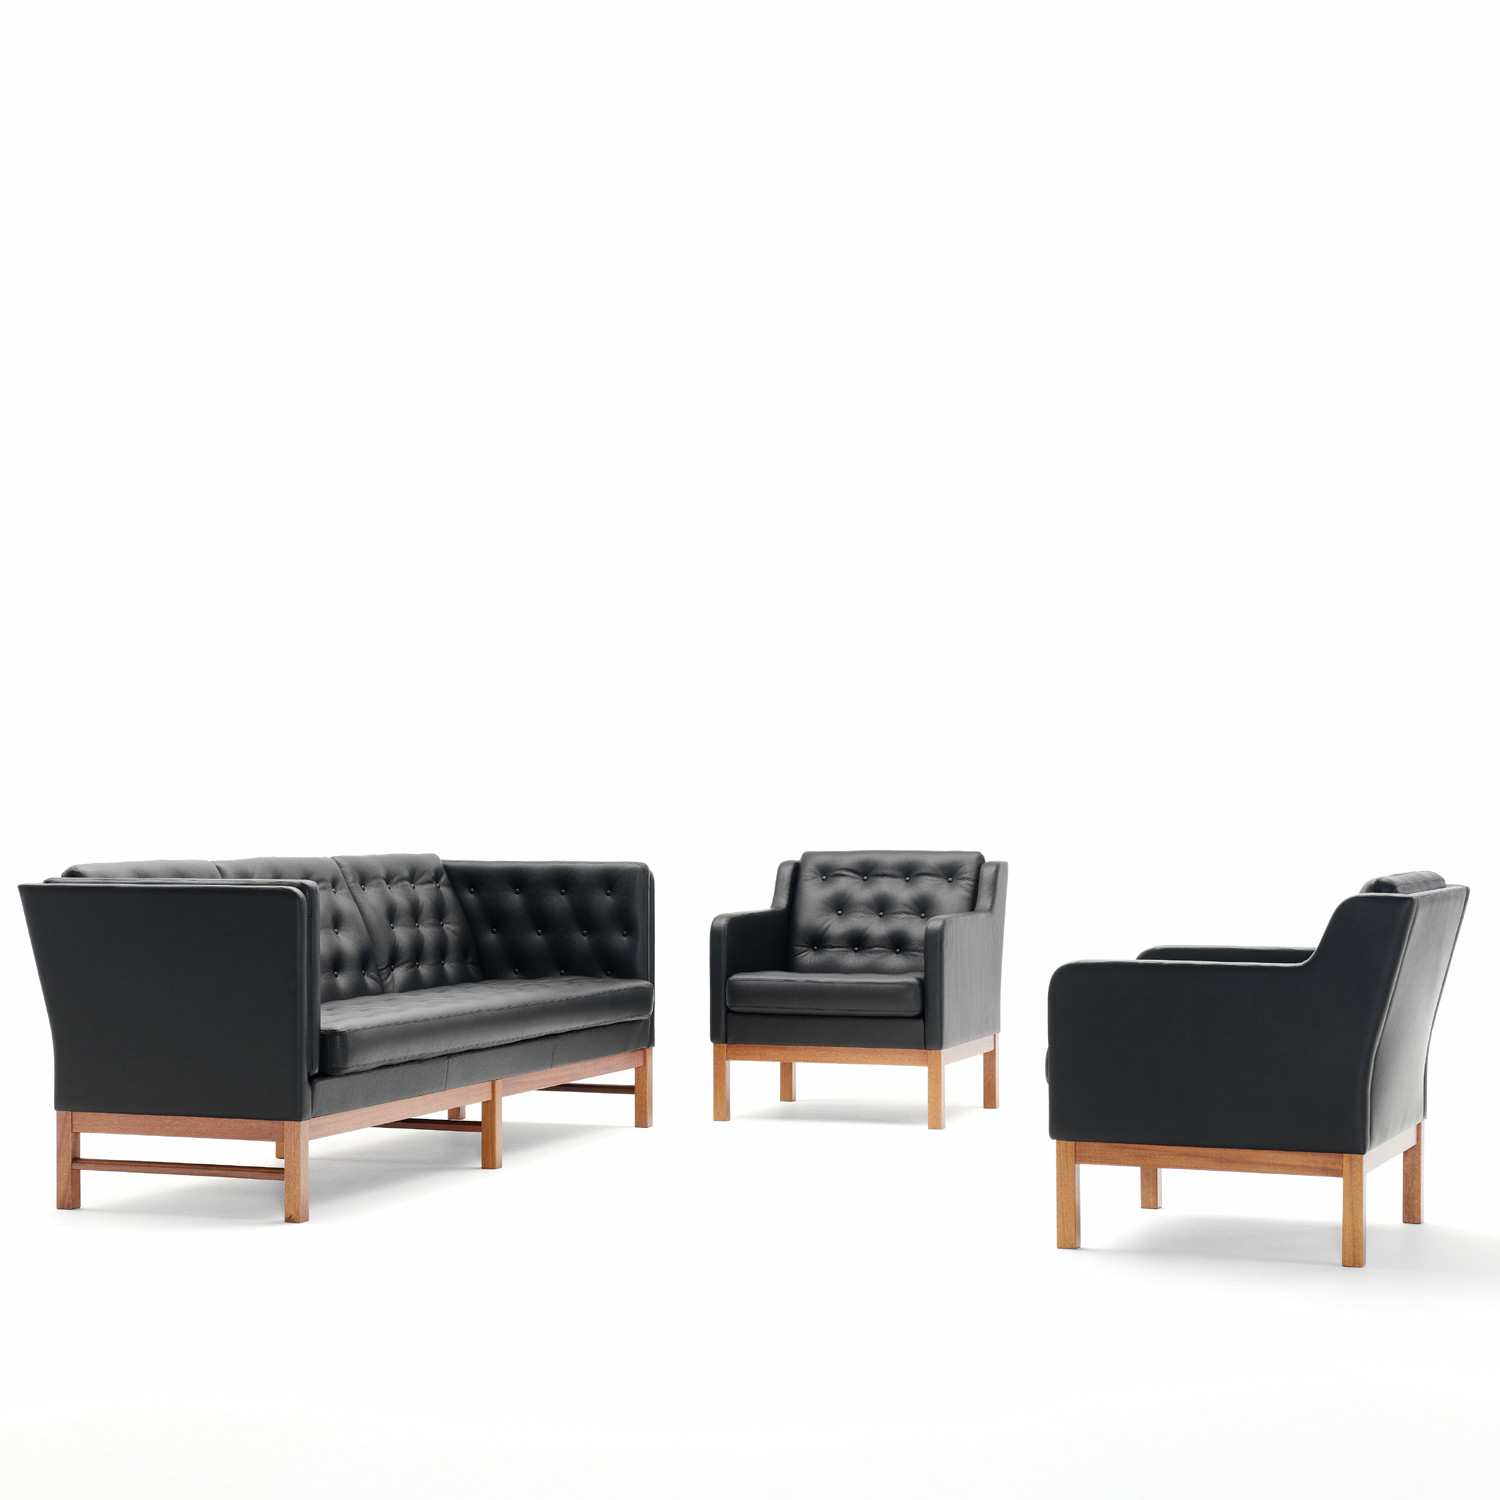 EJ 315 Sofa & Chairs